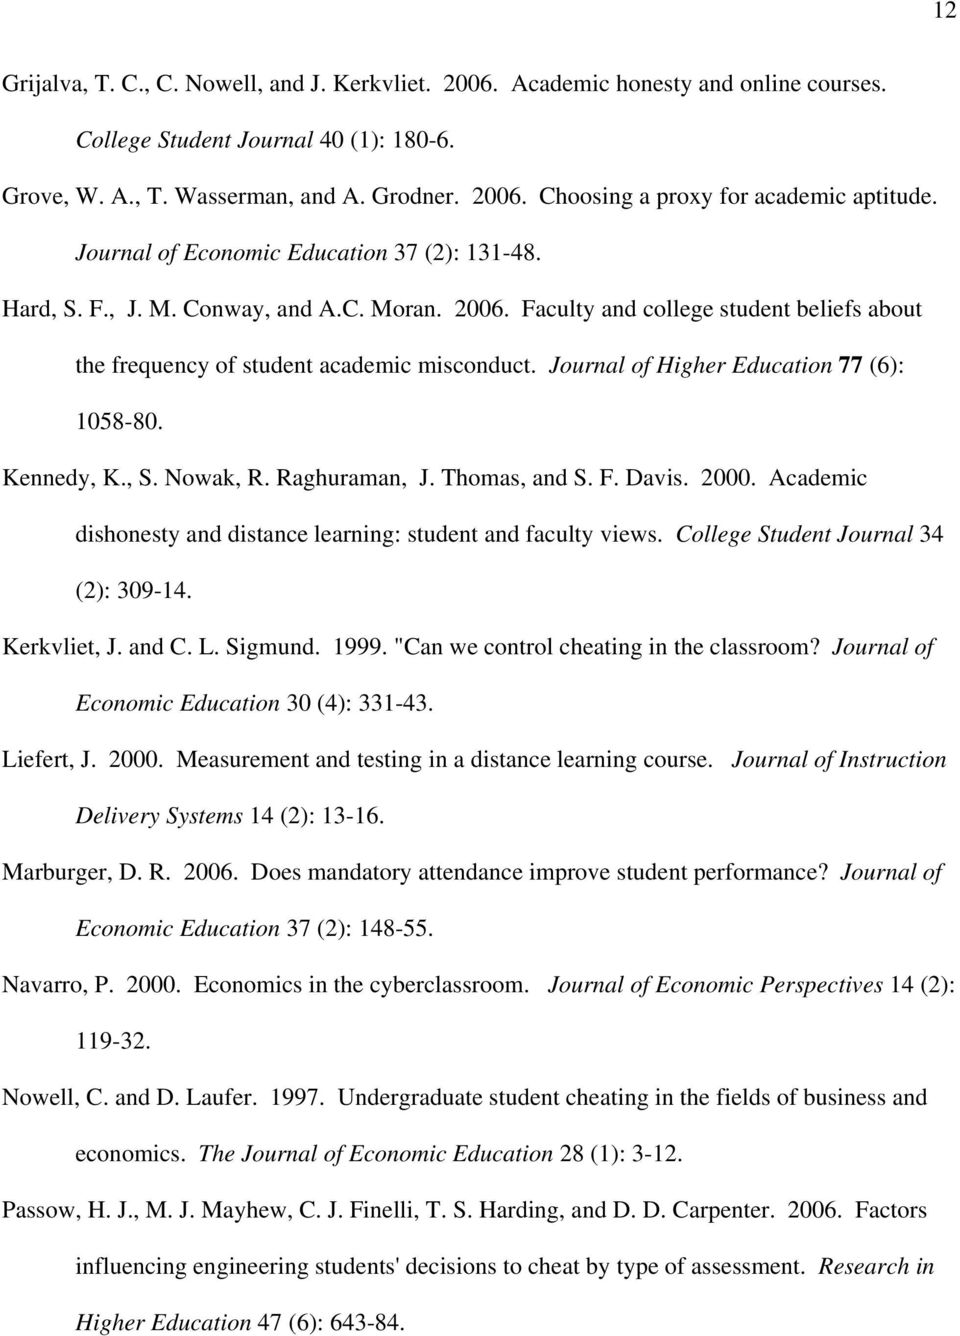 Journal of Higher Education 77 (6): 1058-80. Kennedy, K., S. Nowak, R. Raghuraman, J. Thomas, and S. F. Davis. 2000. Academic dishonesty and distance learning: student and faculty views.